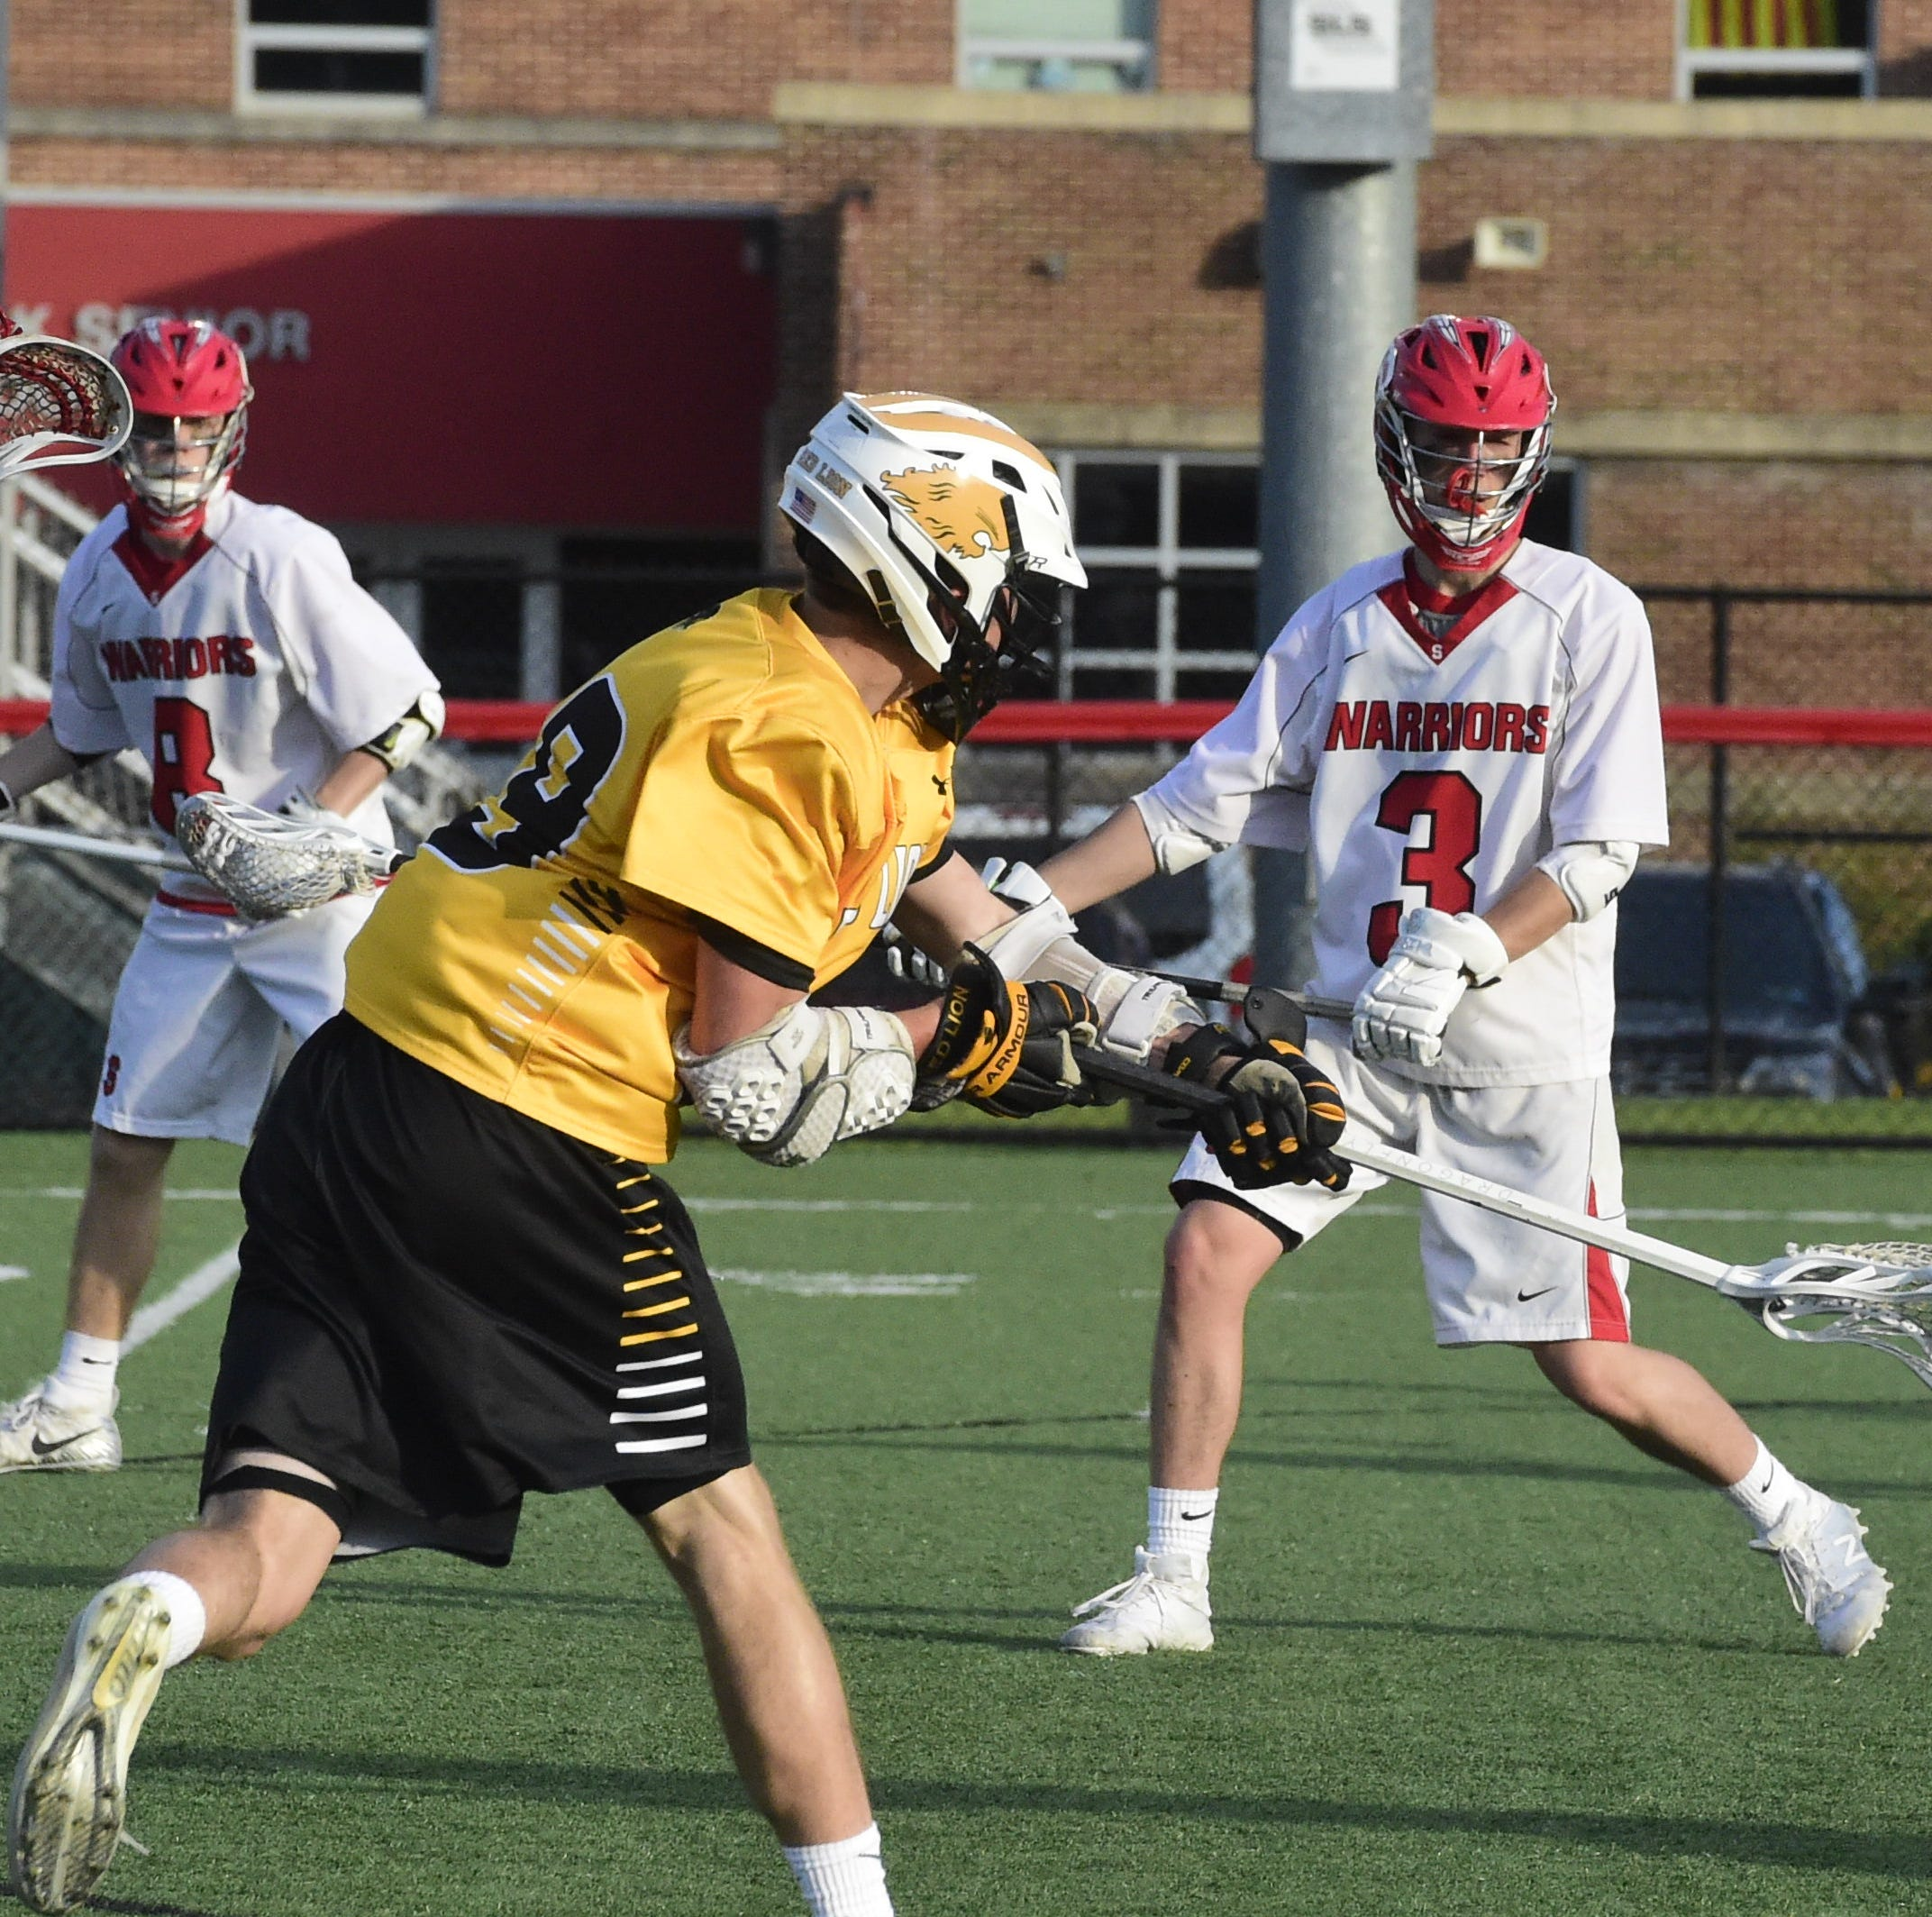 District 3 lacrosse players earn national academic and All-American honors